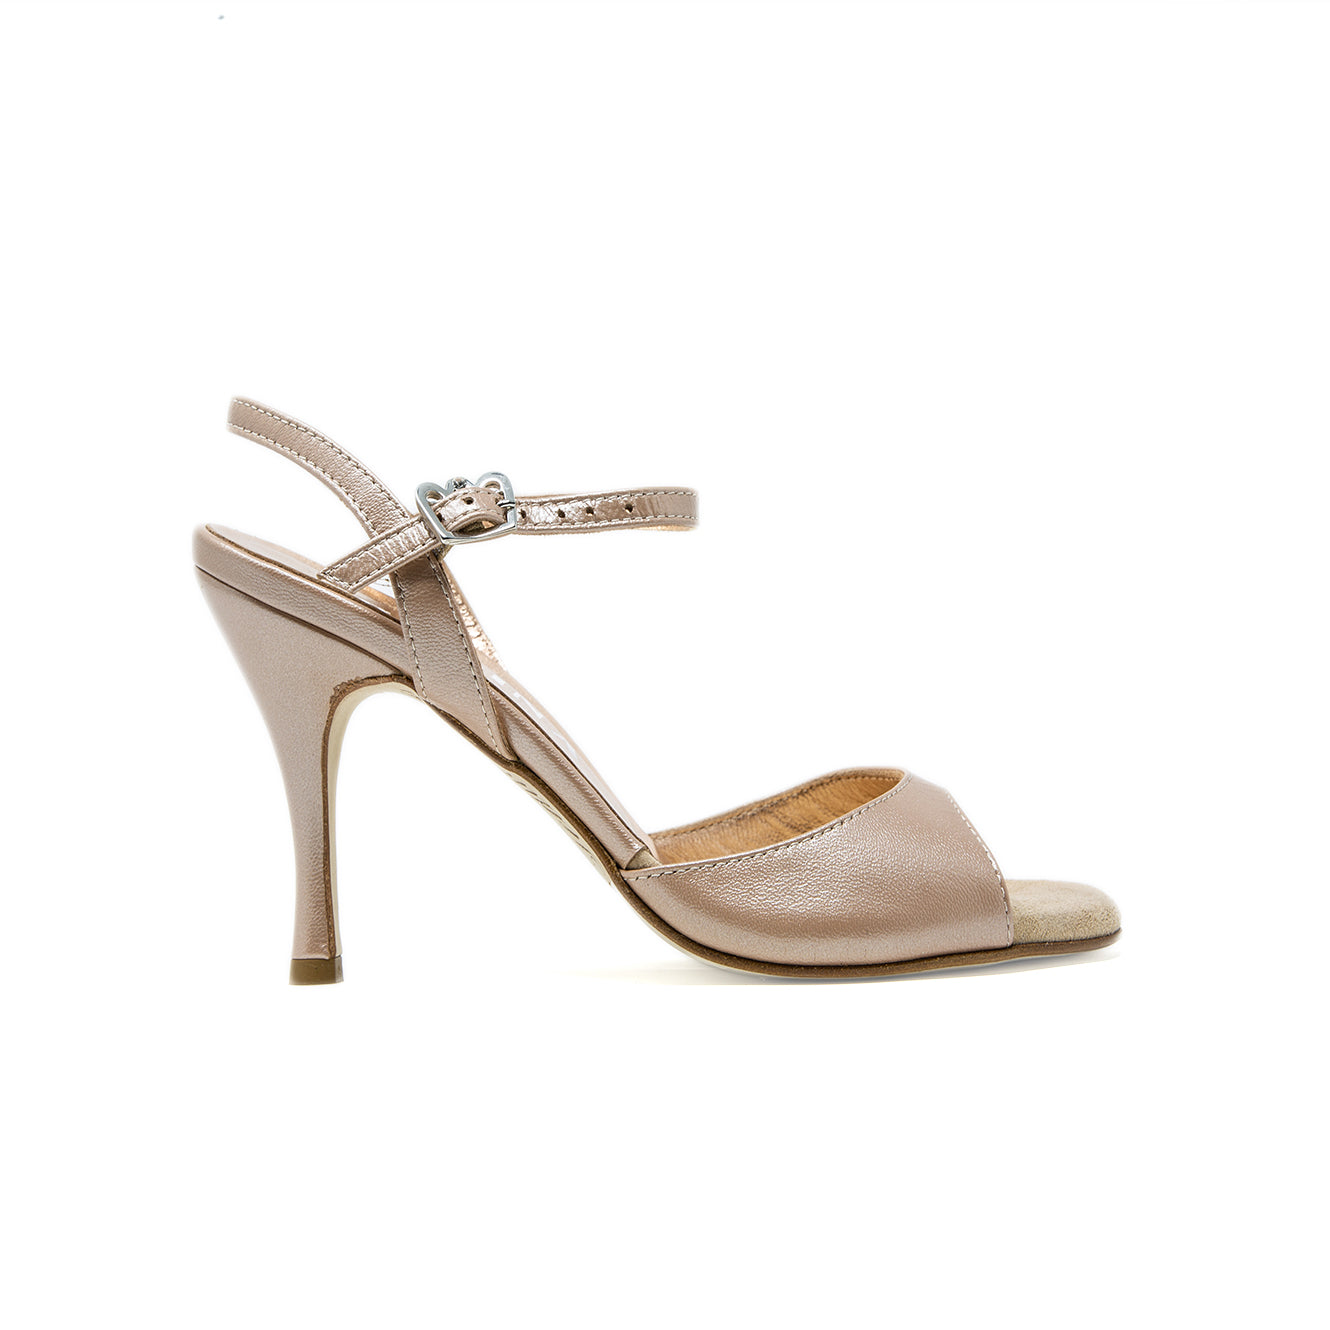 Size 5 - Nizza Slim in Sahara Leather - Regina